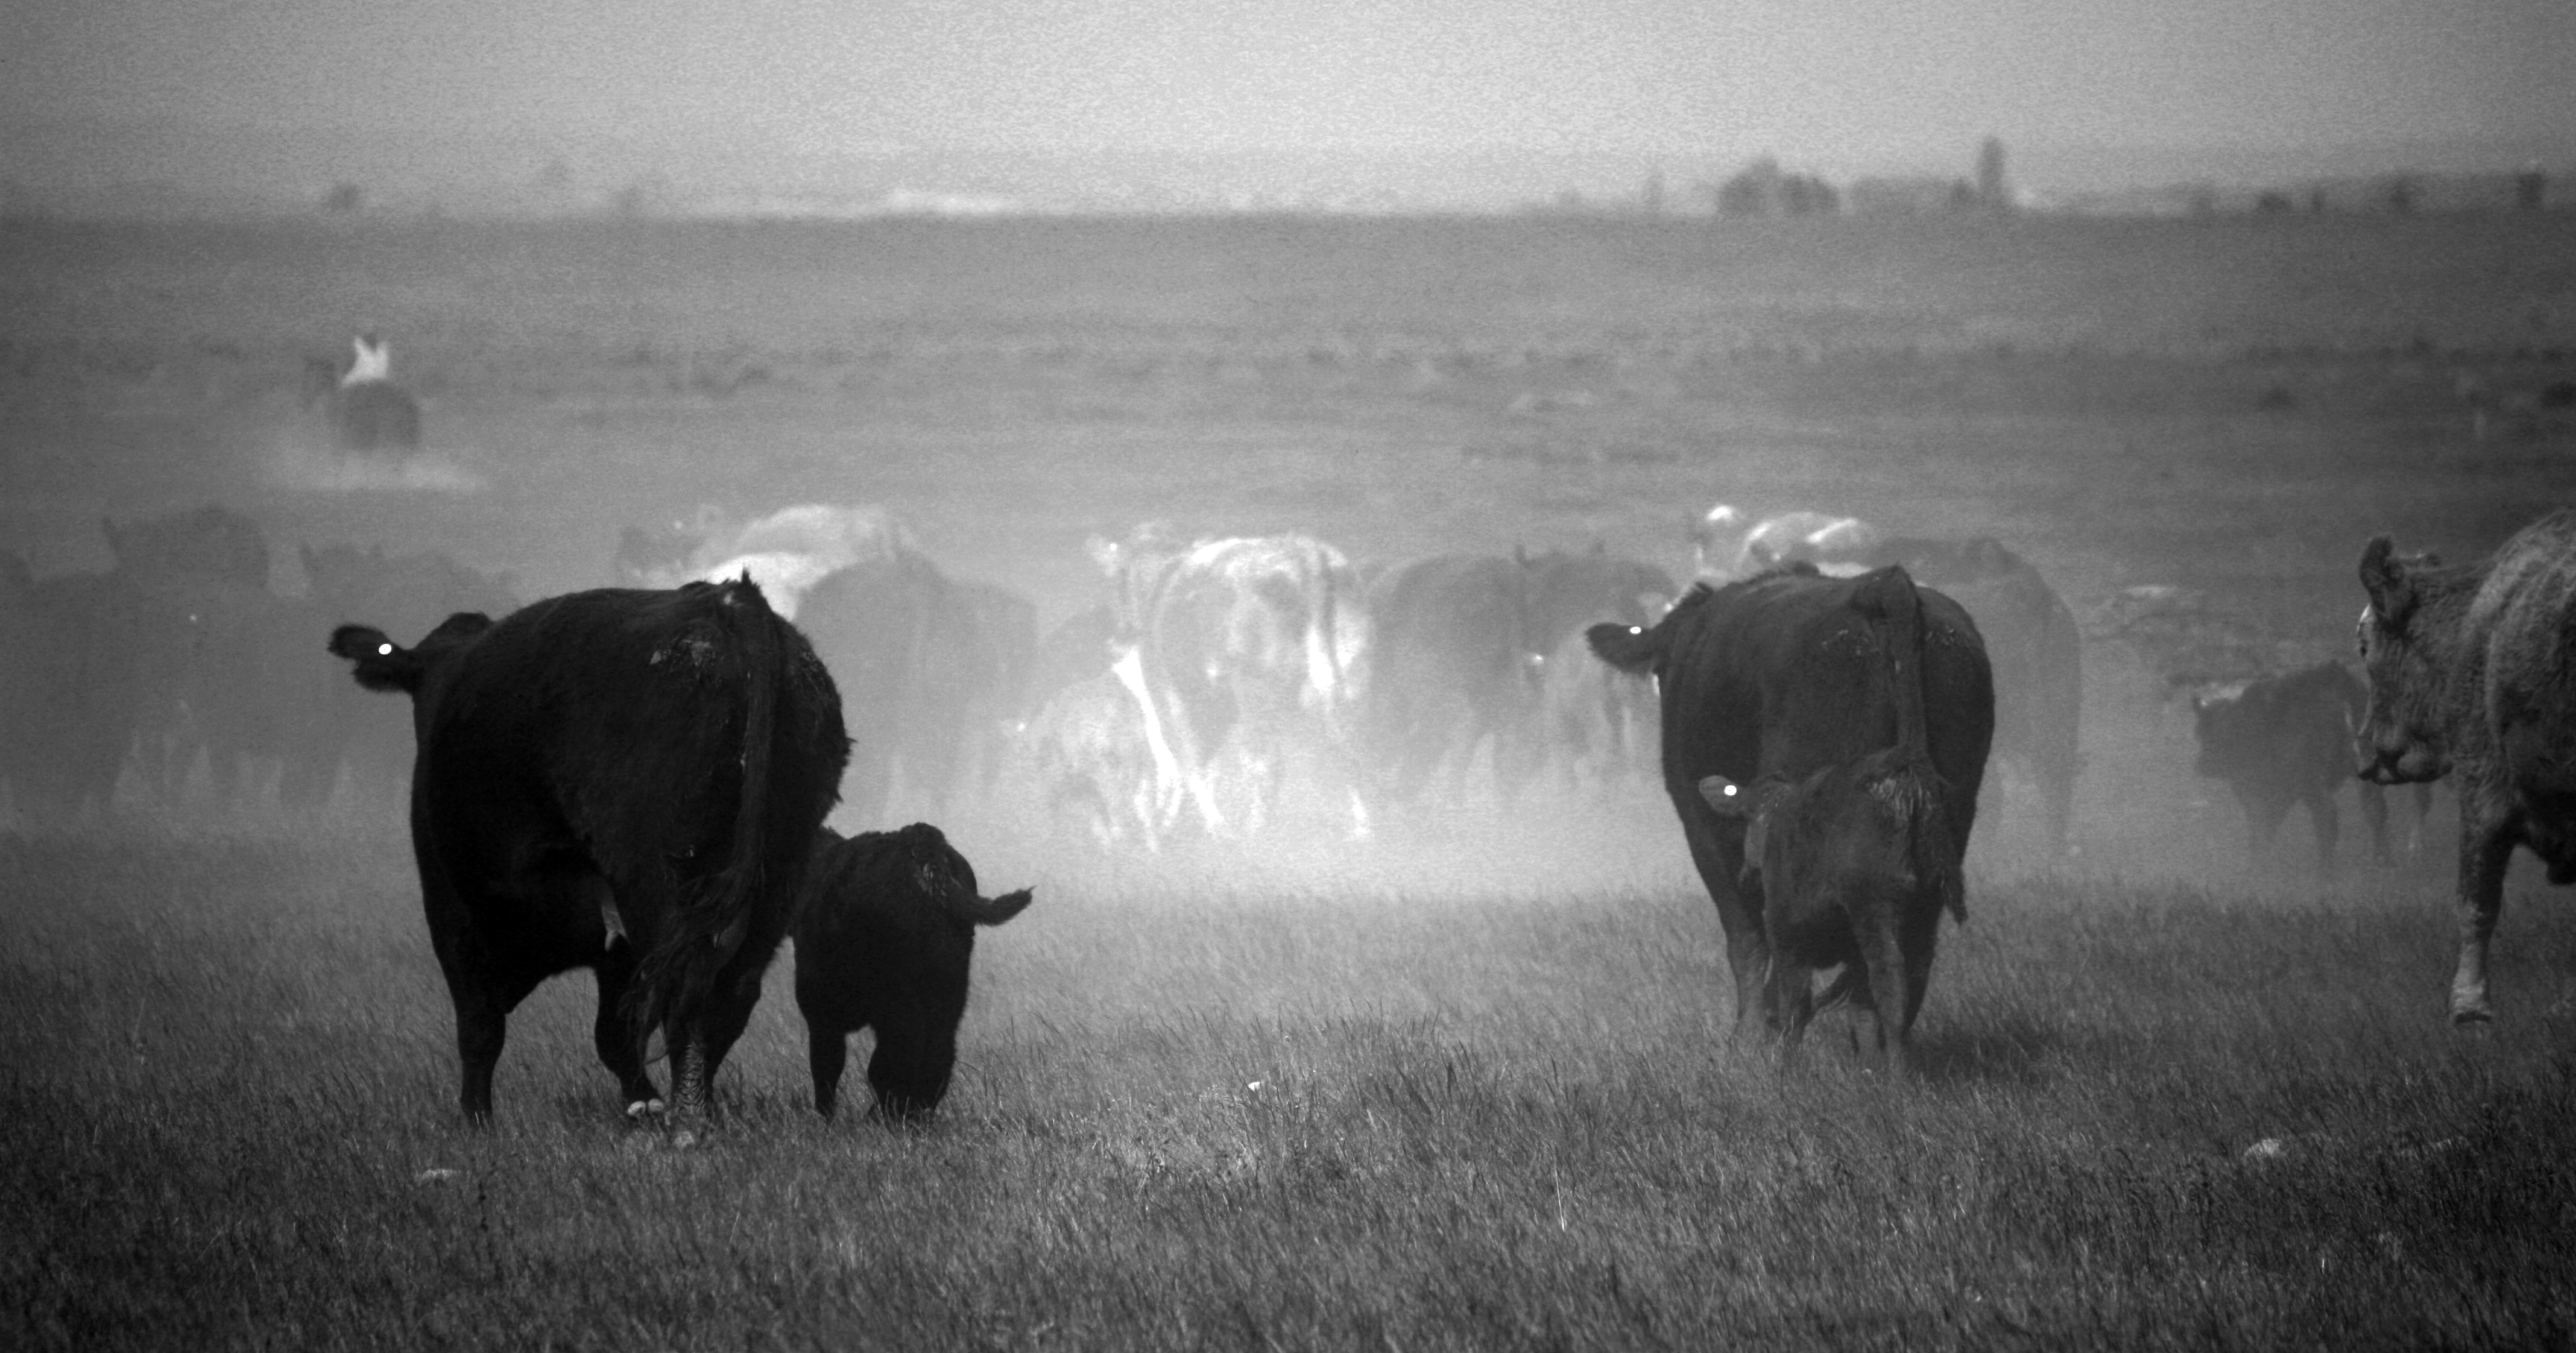 Hanging tree cow dogs for sale - Cattle Walking Away